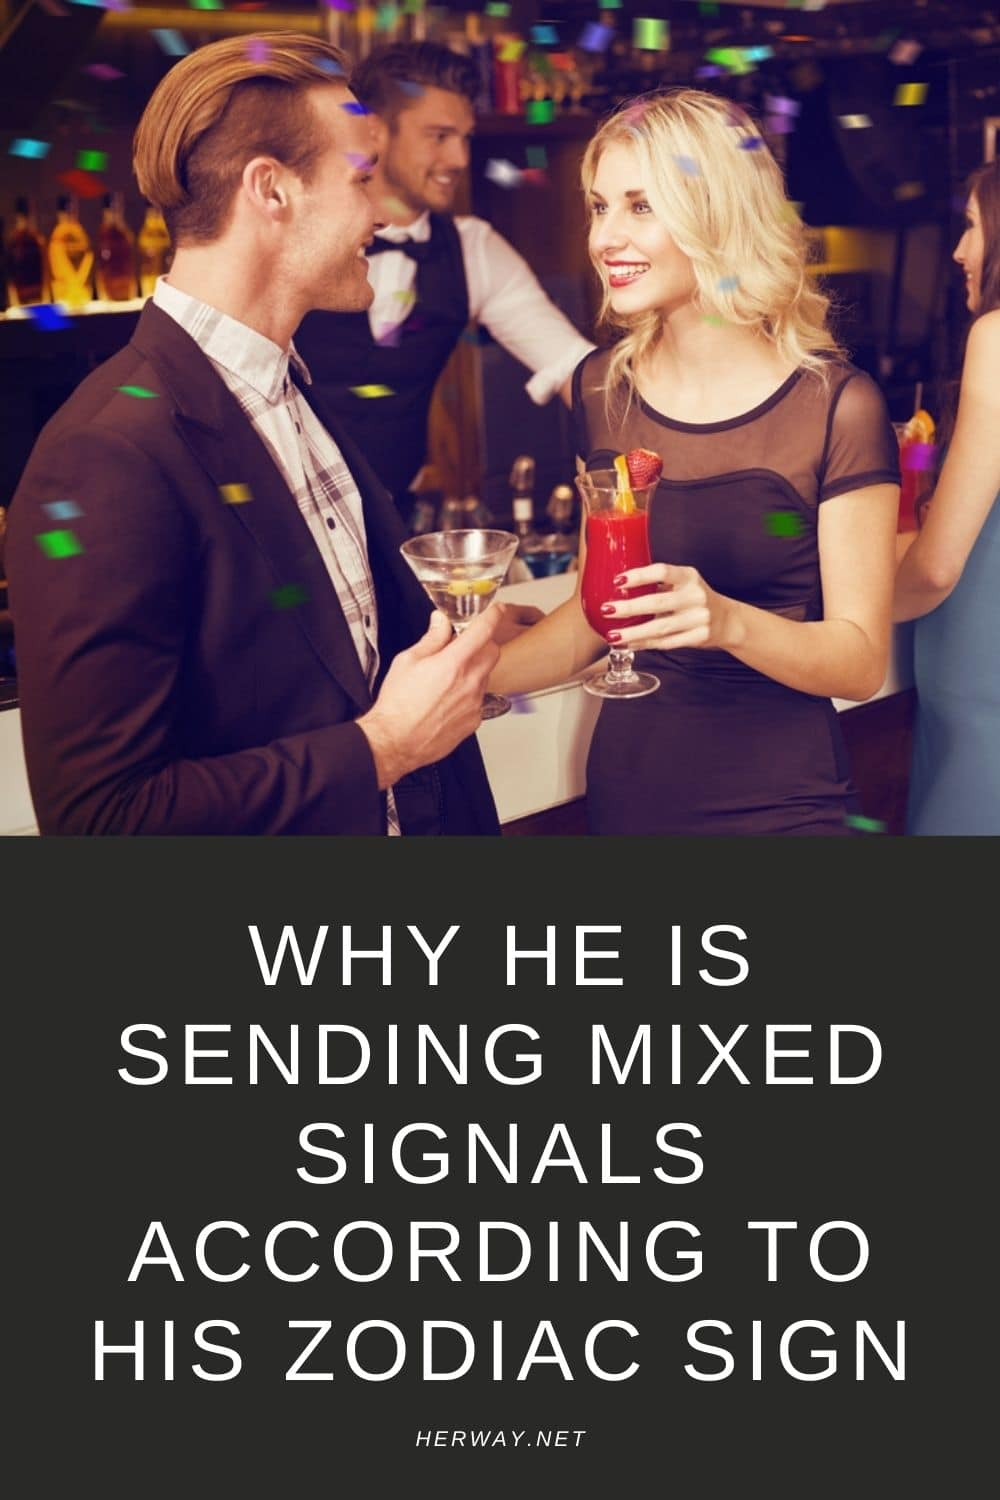 Why He Is Sending Mixed Signals According To His Zodiac Sign